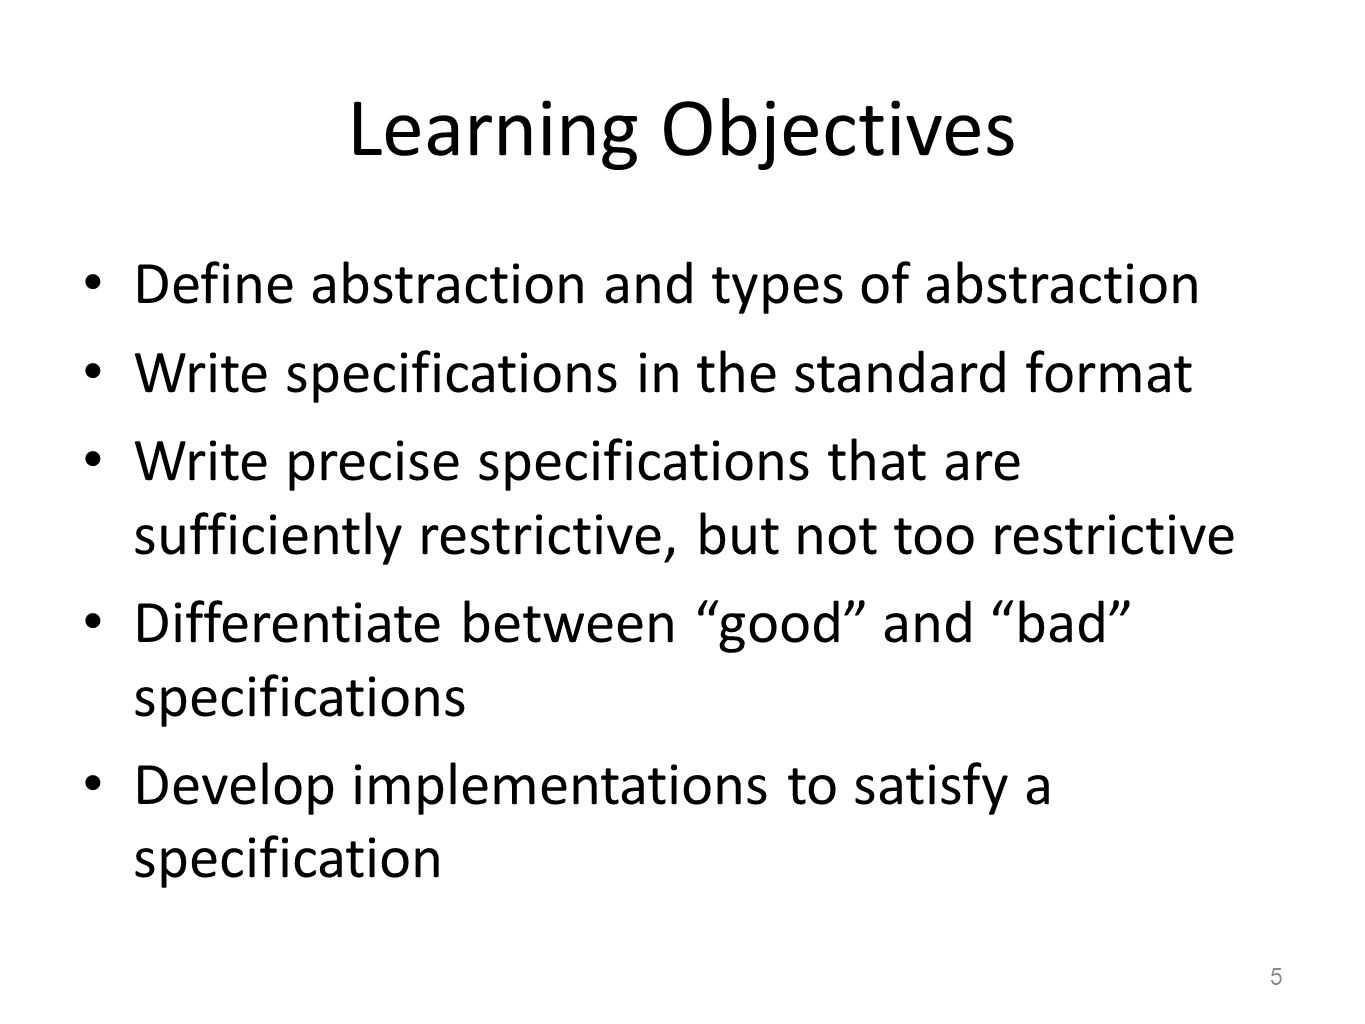 Learning Objectives Define abstraction and types of abstraction Write specifications in the standard format Write precise specifications that are sufficiently restrictive, but not too restrictive Differentiate between good and bad specifications Develop implementations to satisfy a specification 36